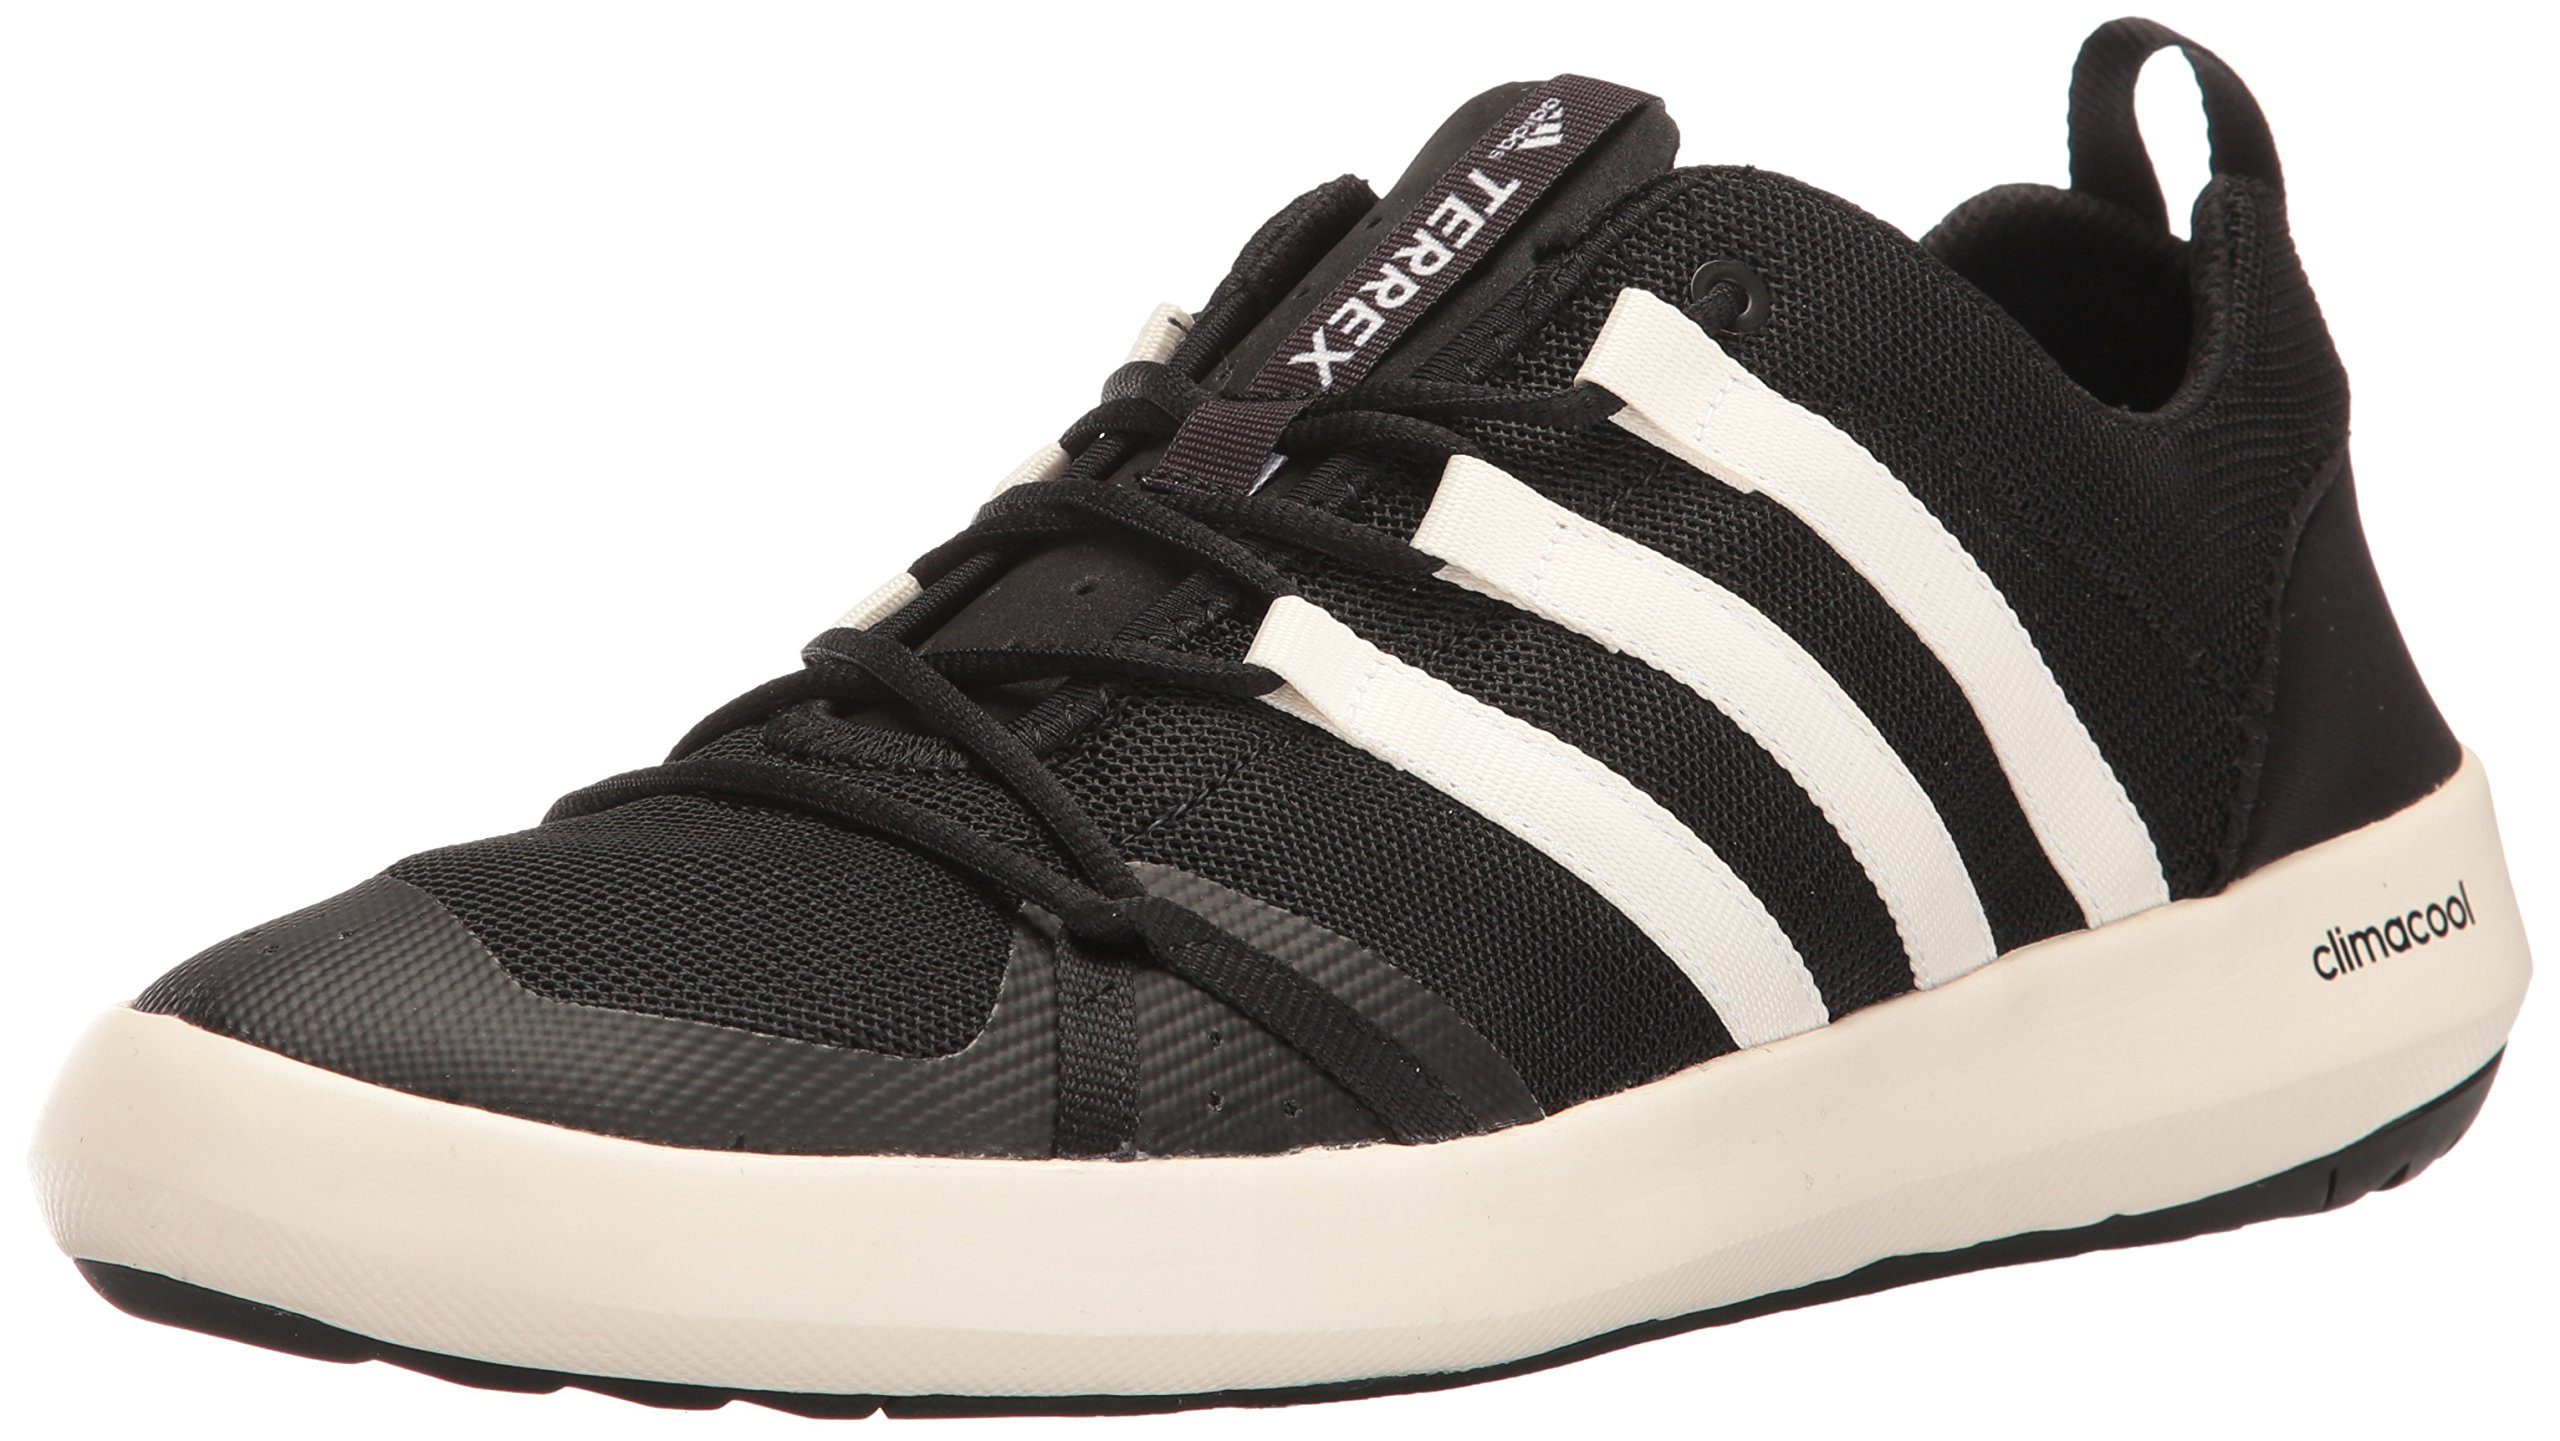 sneakers for cheap ad75b 0fdad adidas outdoor Men s Terrex Climacool Boat Water Shoe